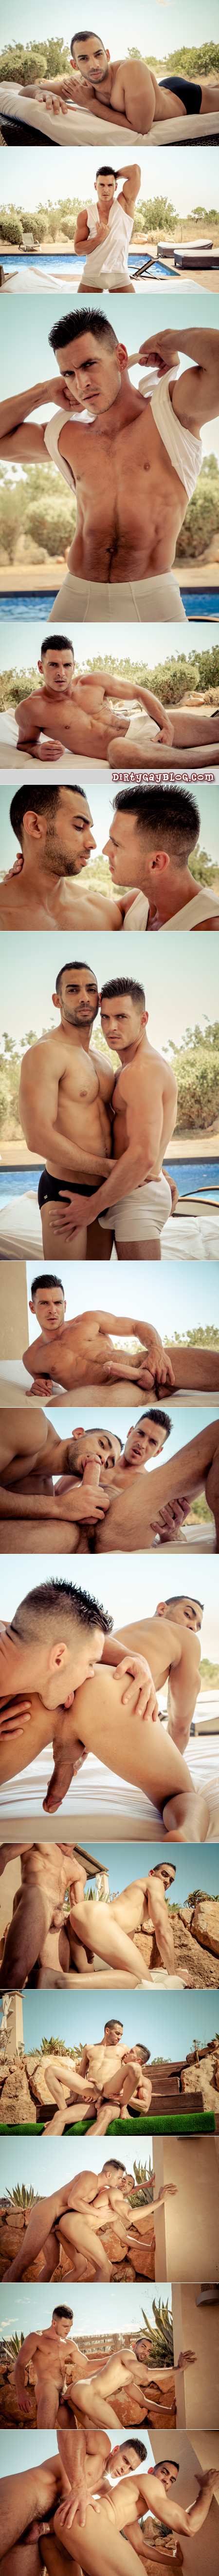 Well-hung muscle stud with furry abs fucks a tall Spanish muscleman with his huge cock.